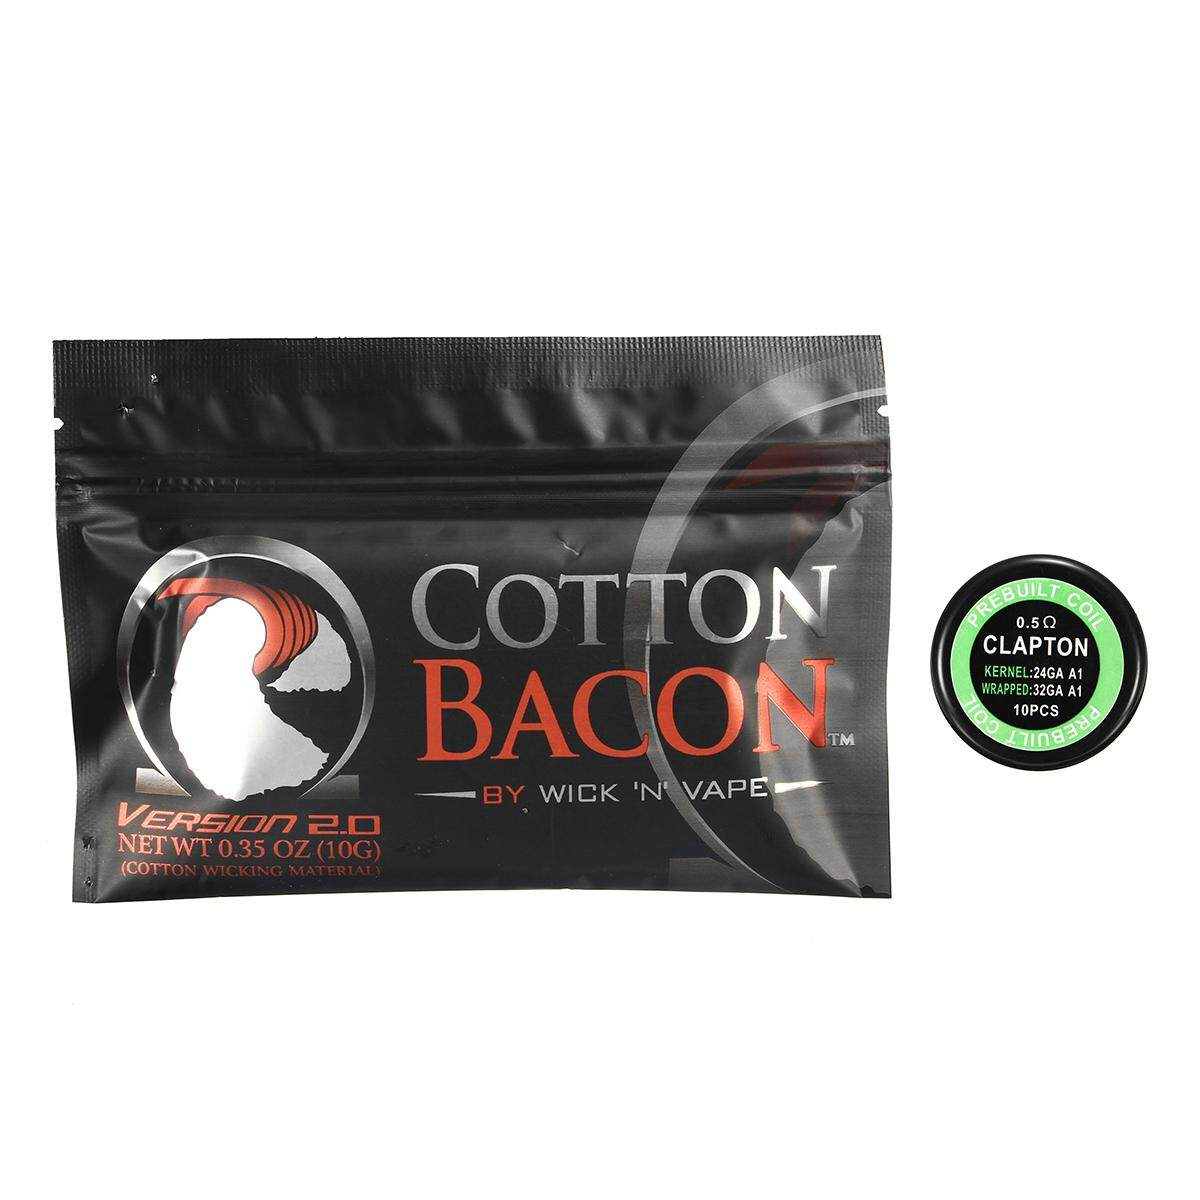 10pcs Pre-Built Clapton Coils 0.5Ω DIY For RDA With Cotton Bacon V2 brand new